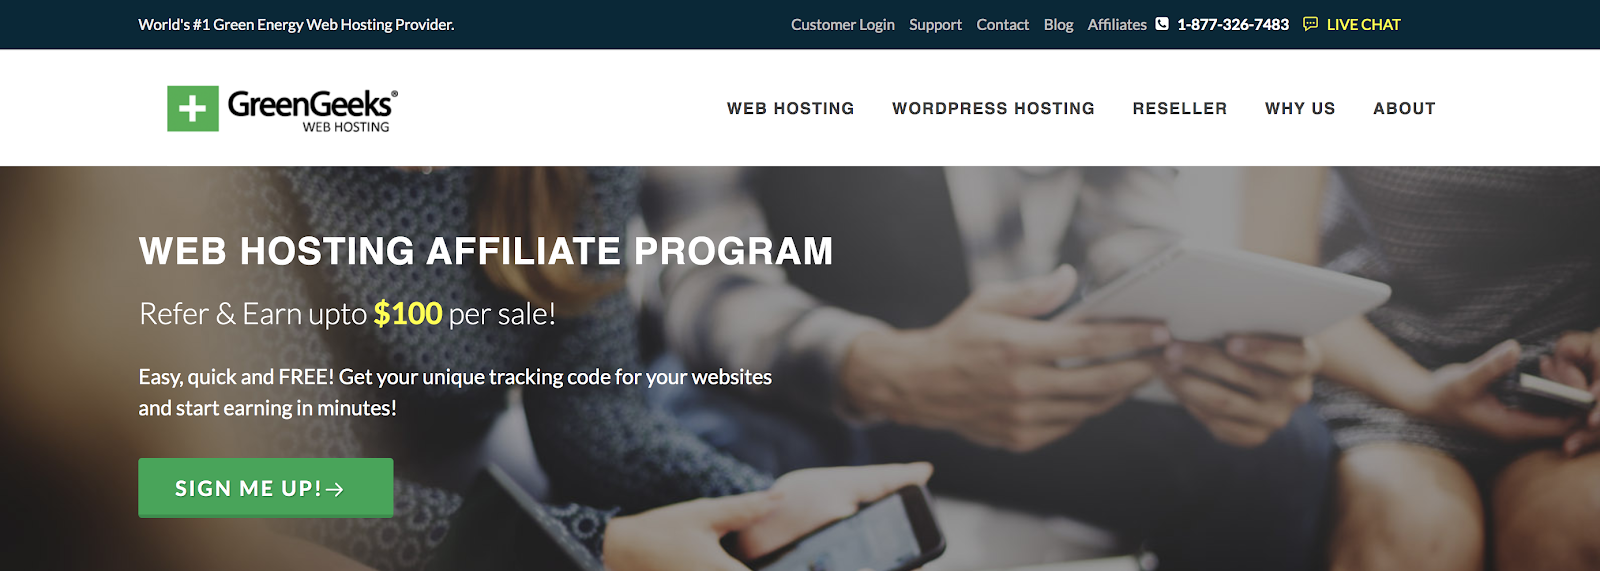 GreenGeeks Web Hosting Referral Program Details